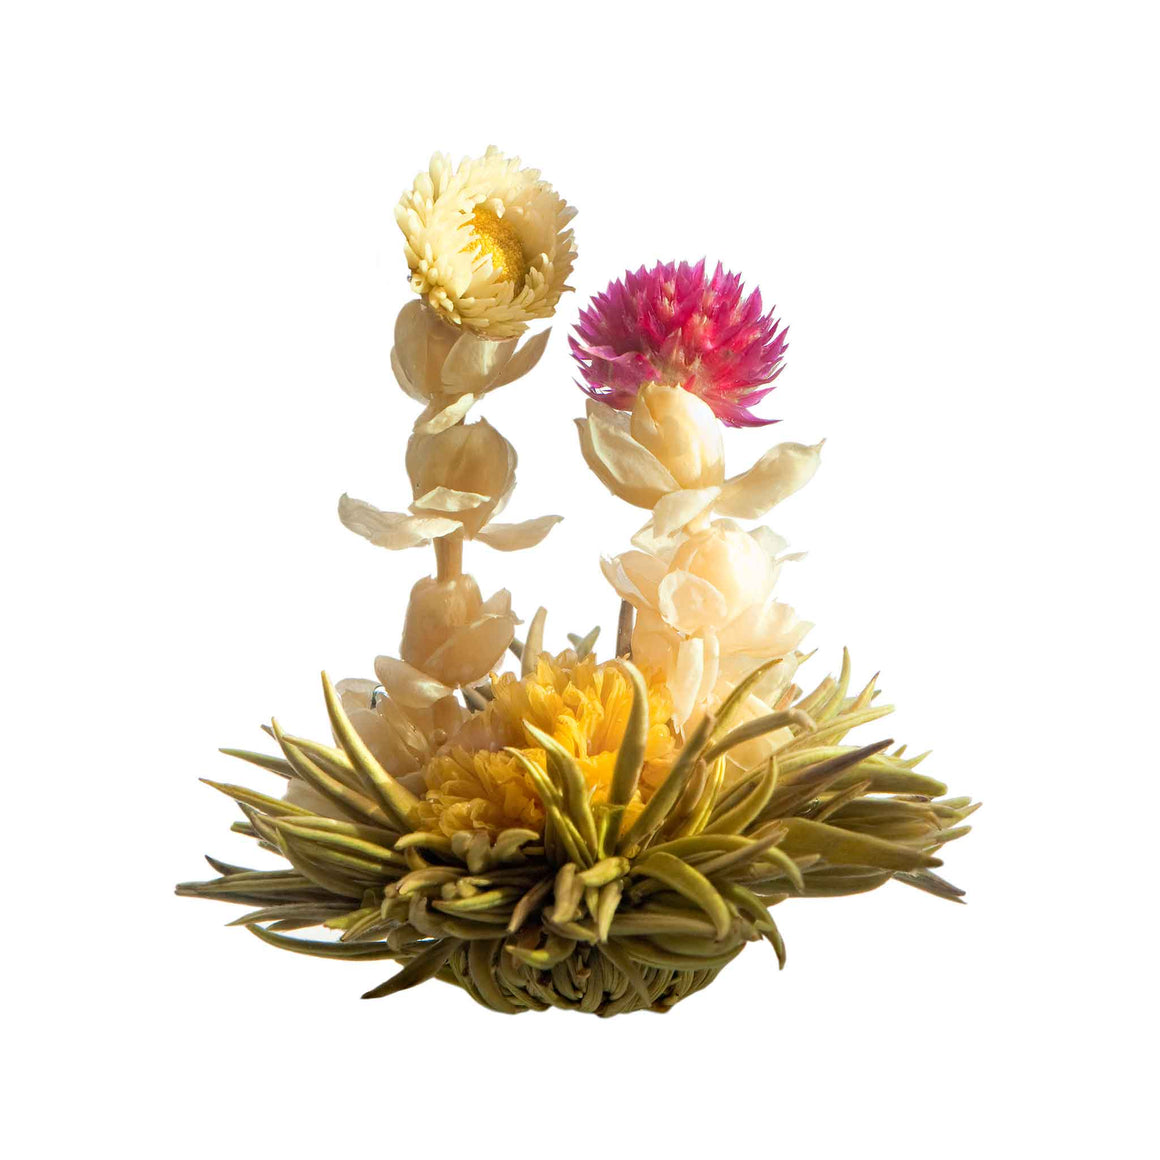 teaposy harmony blooming tea, with jasmine flower, caledula, amaranth and chrysanthemum